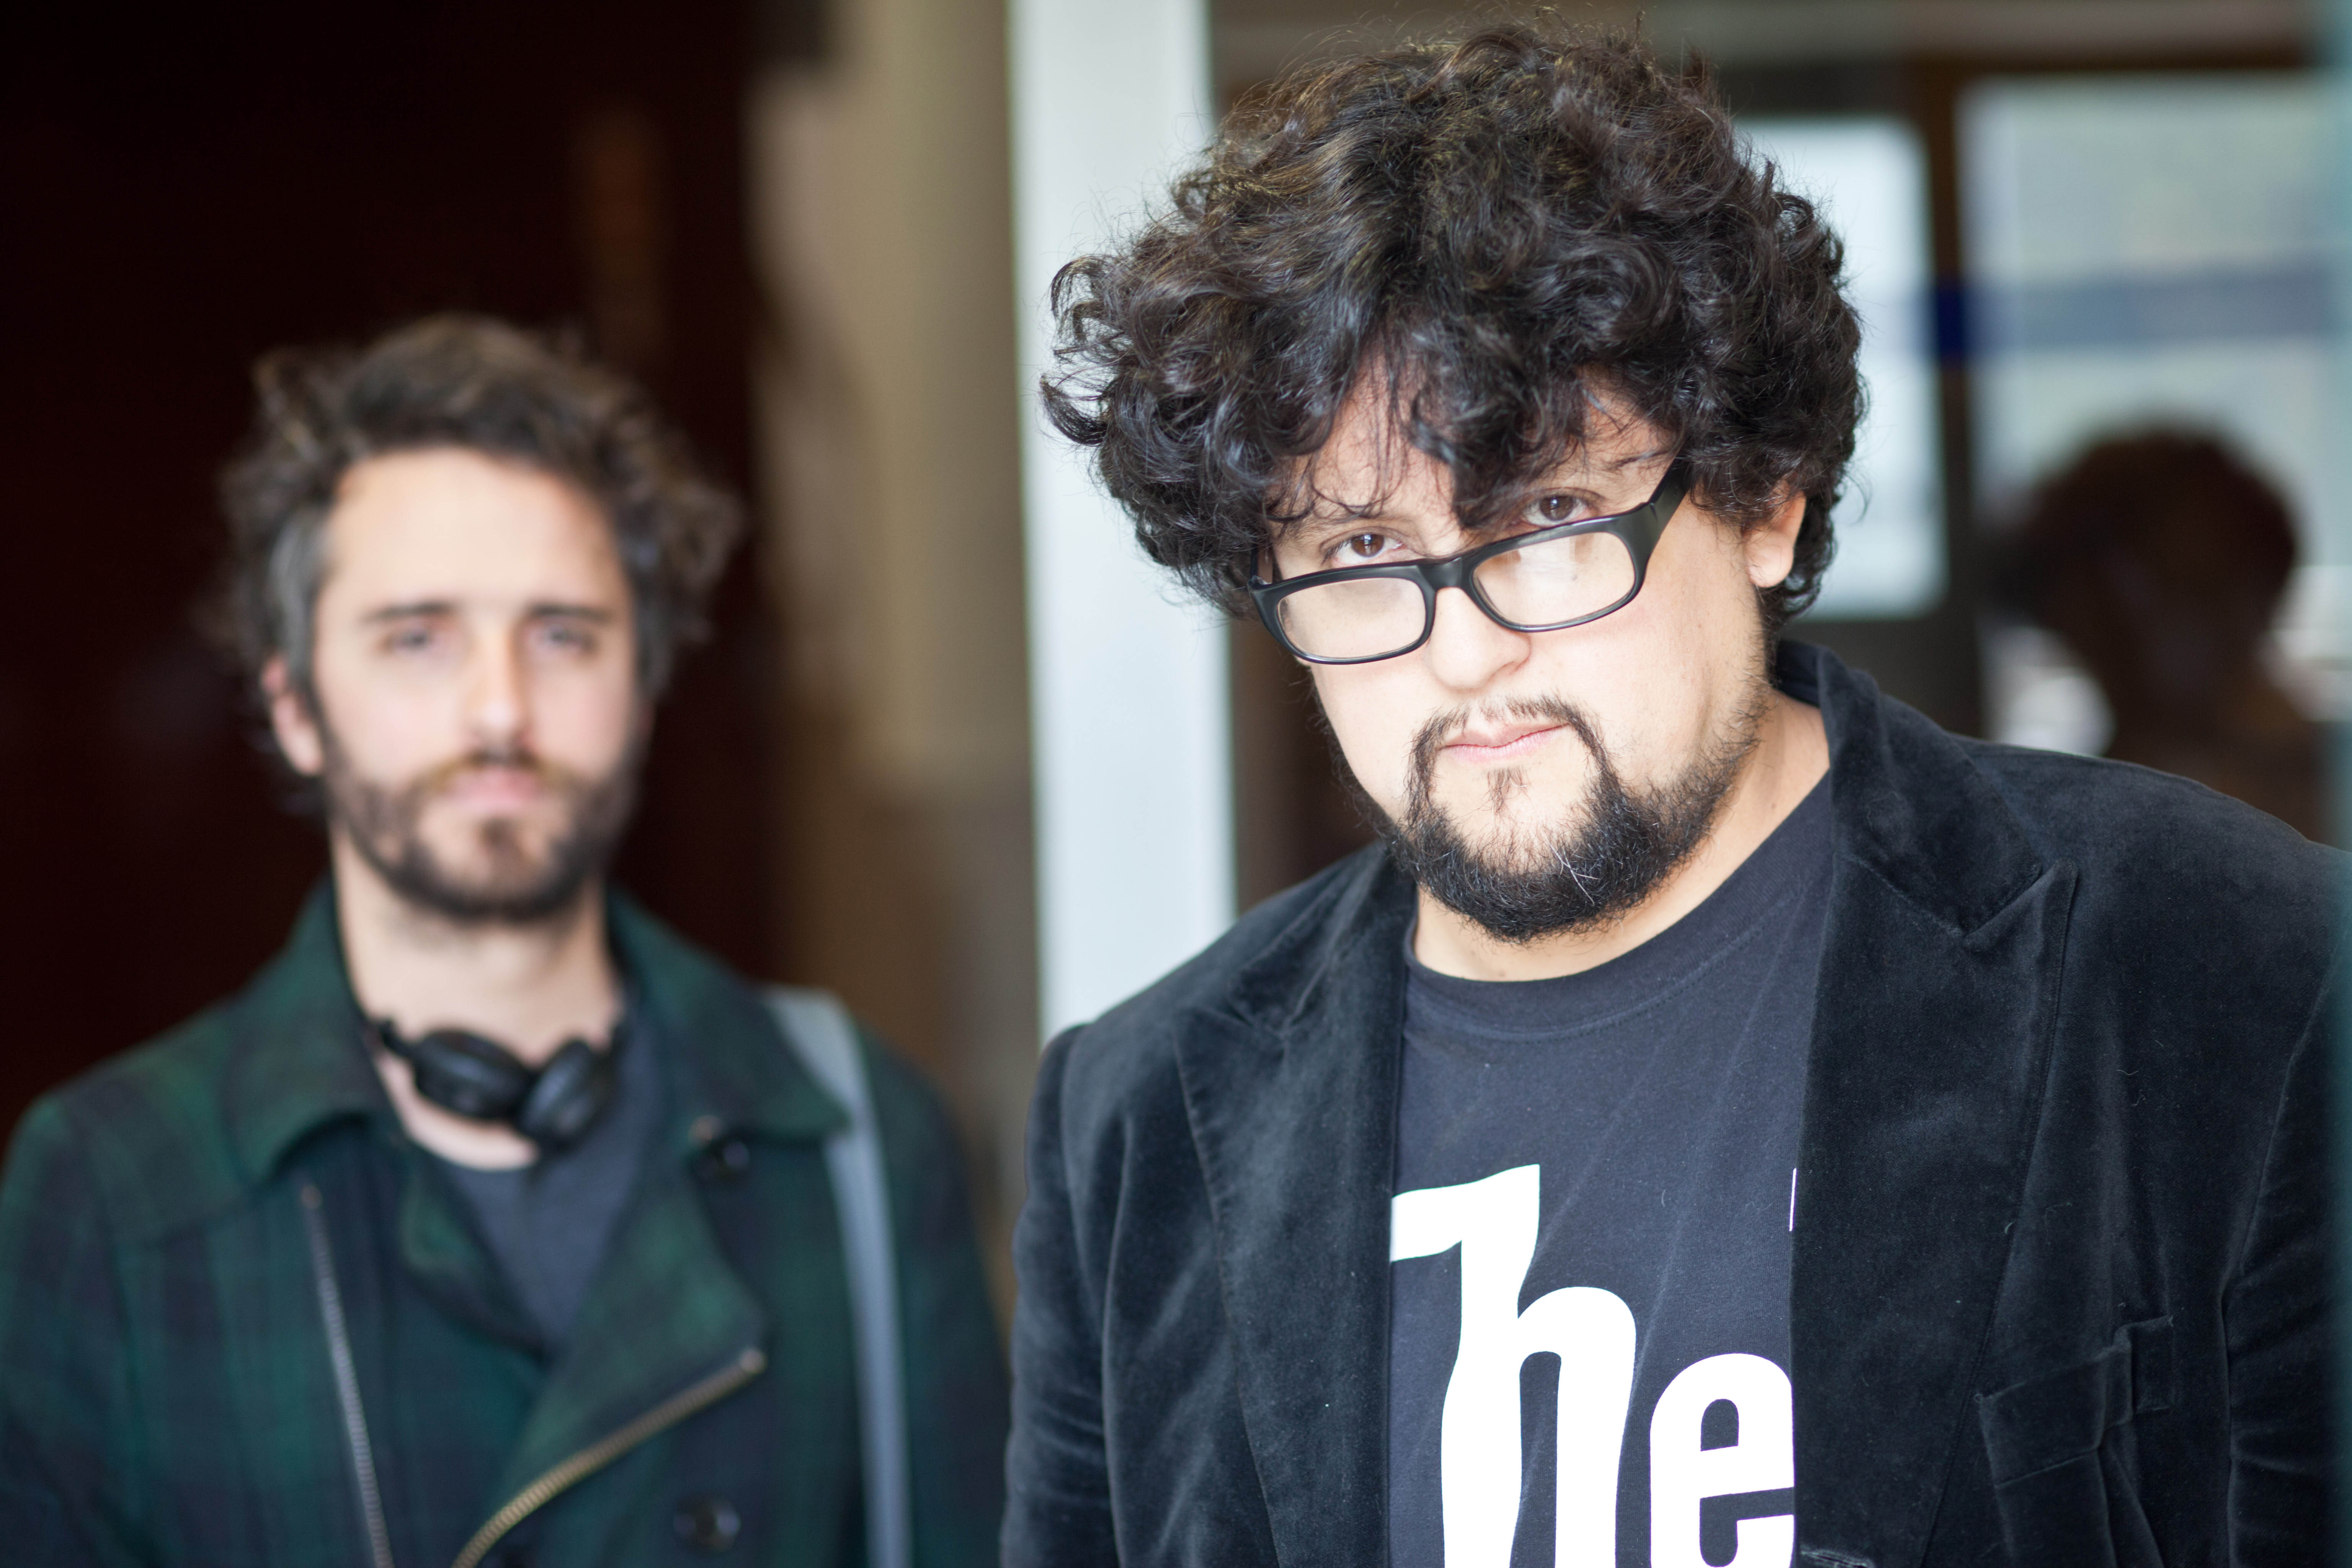 While Chilean Cinema Soars, Its Filmmakers Scramble to Find Funding